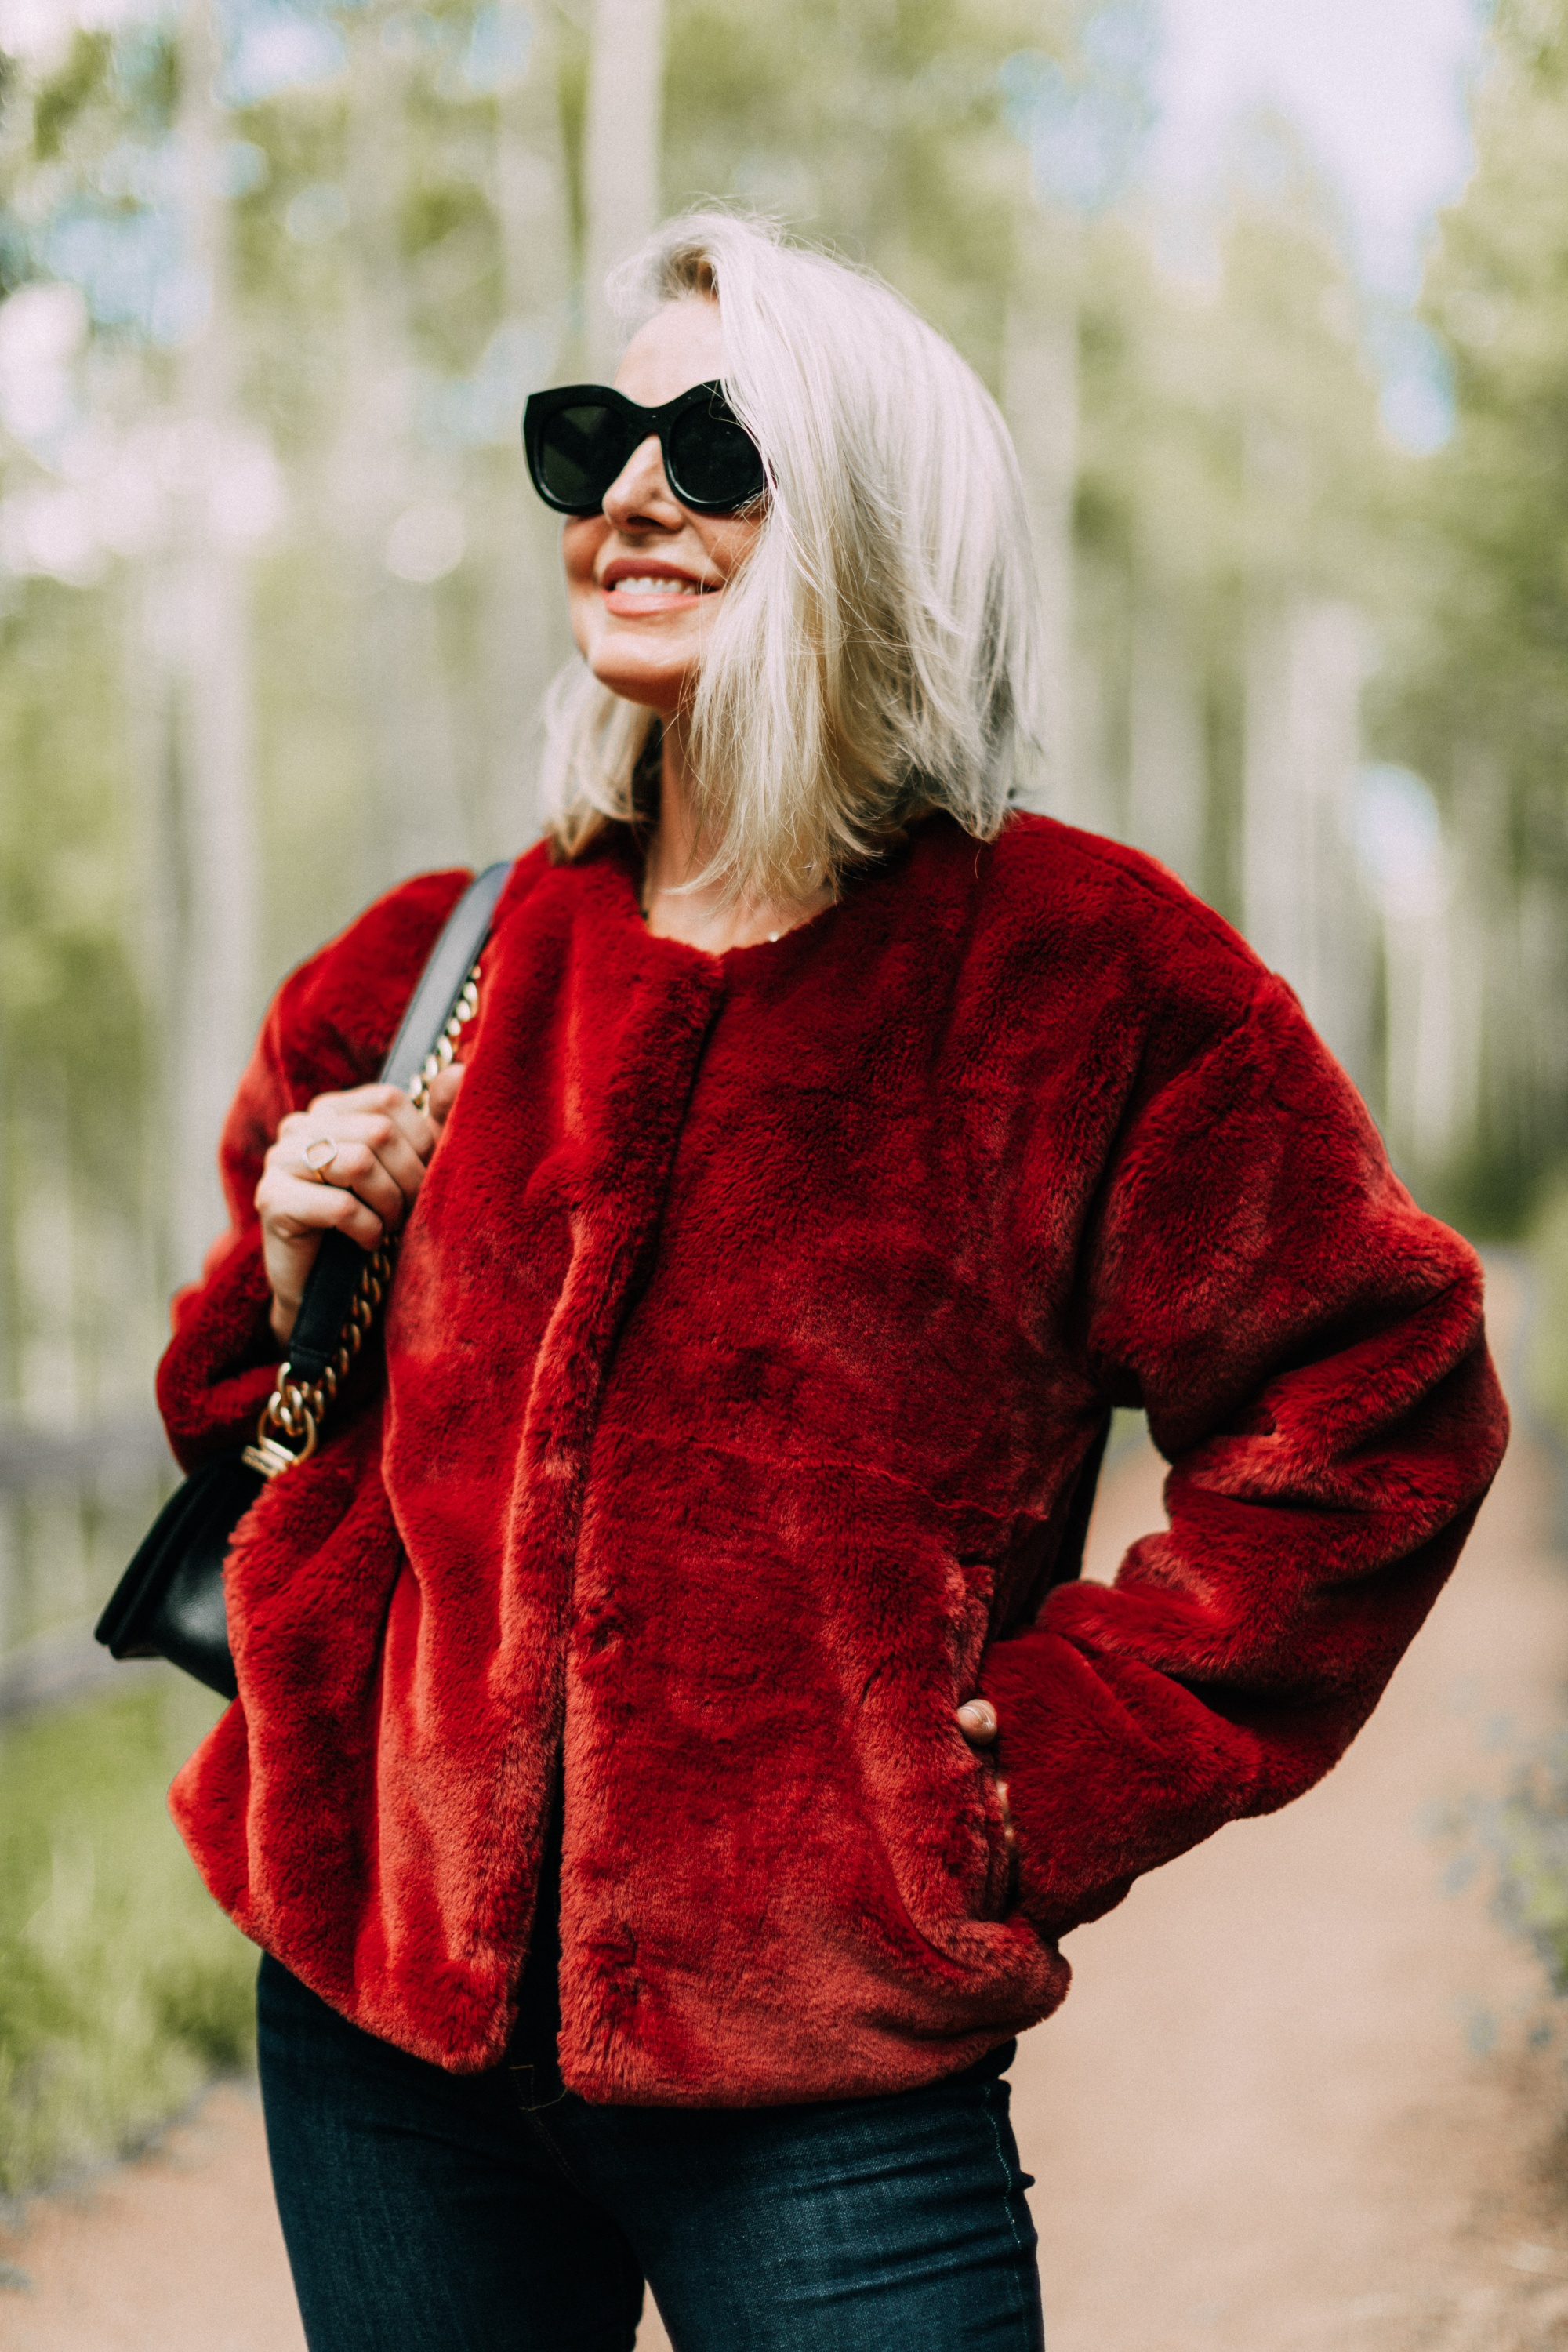 nordstrom anniversary sale 2019 best jackets including this faux fur jacket by Sanctuary on fashion blogger Erin Busbee in Telluride Colorado